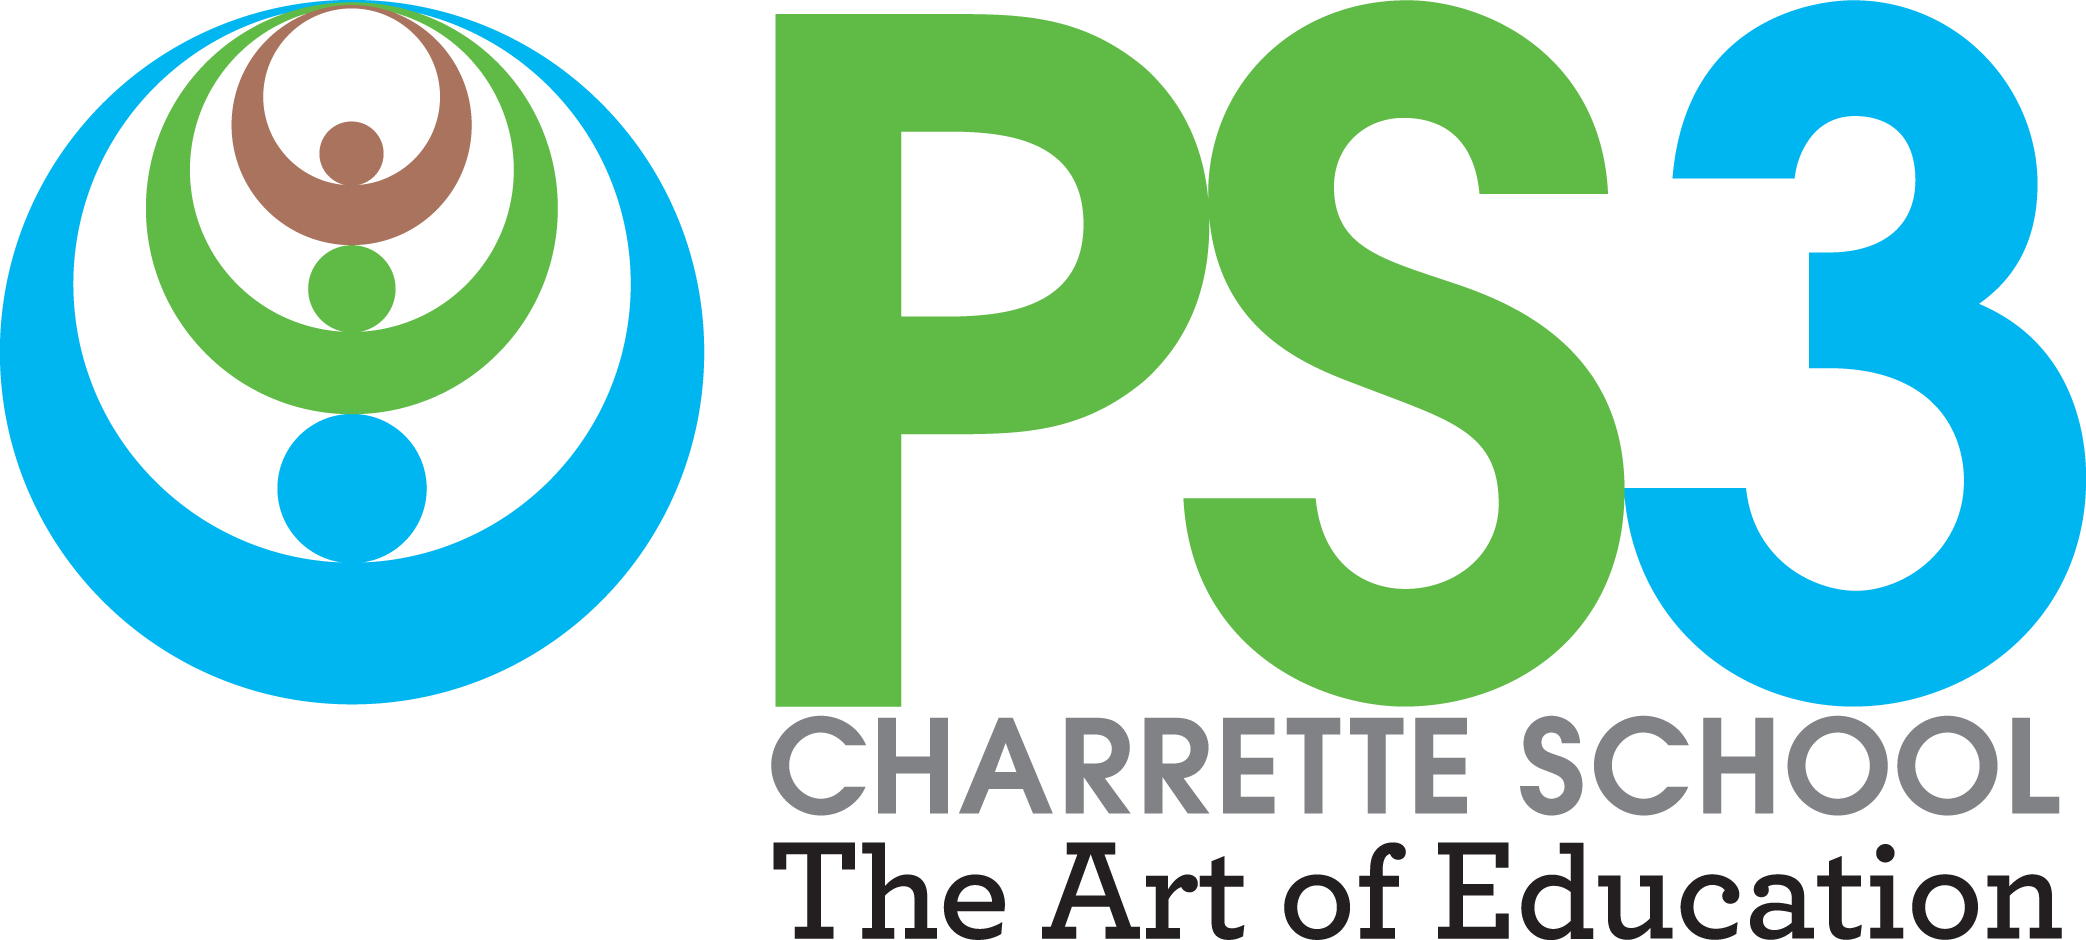 PS3: Charrette School Logo